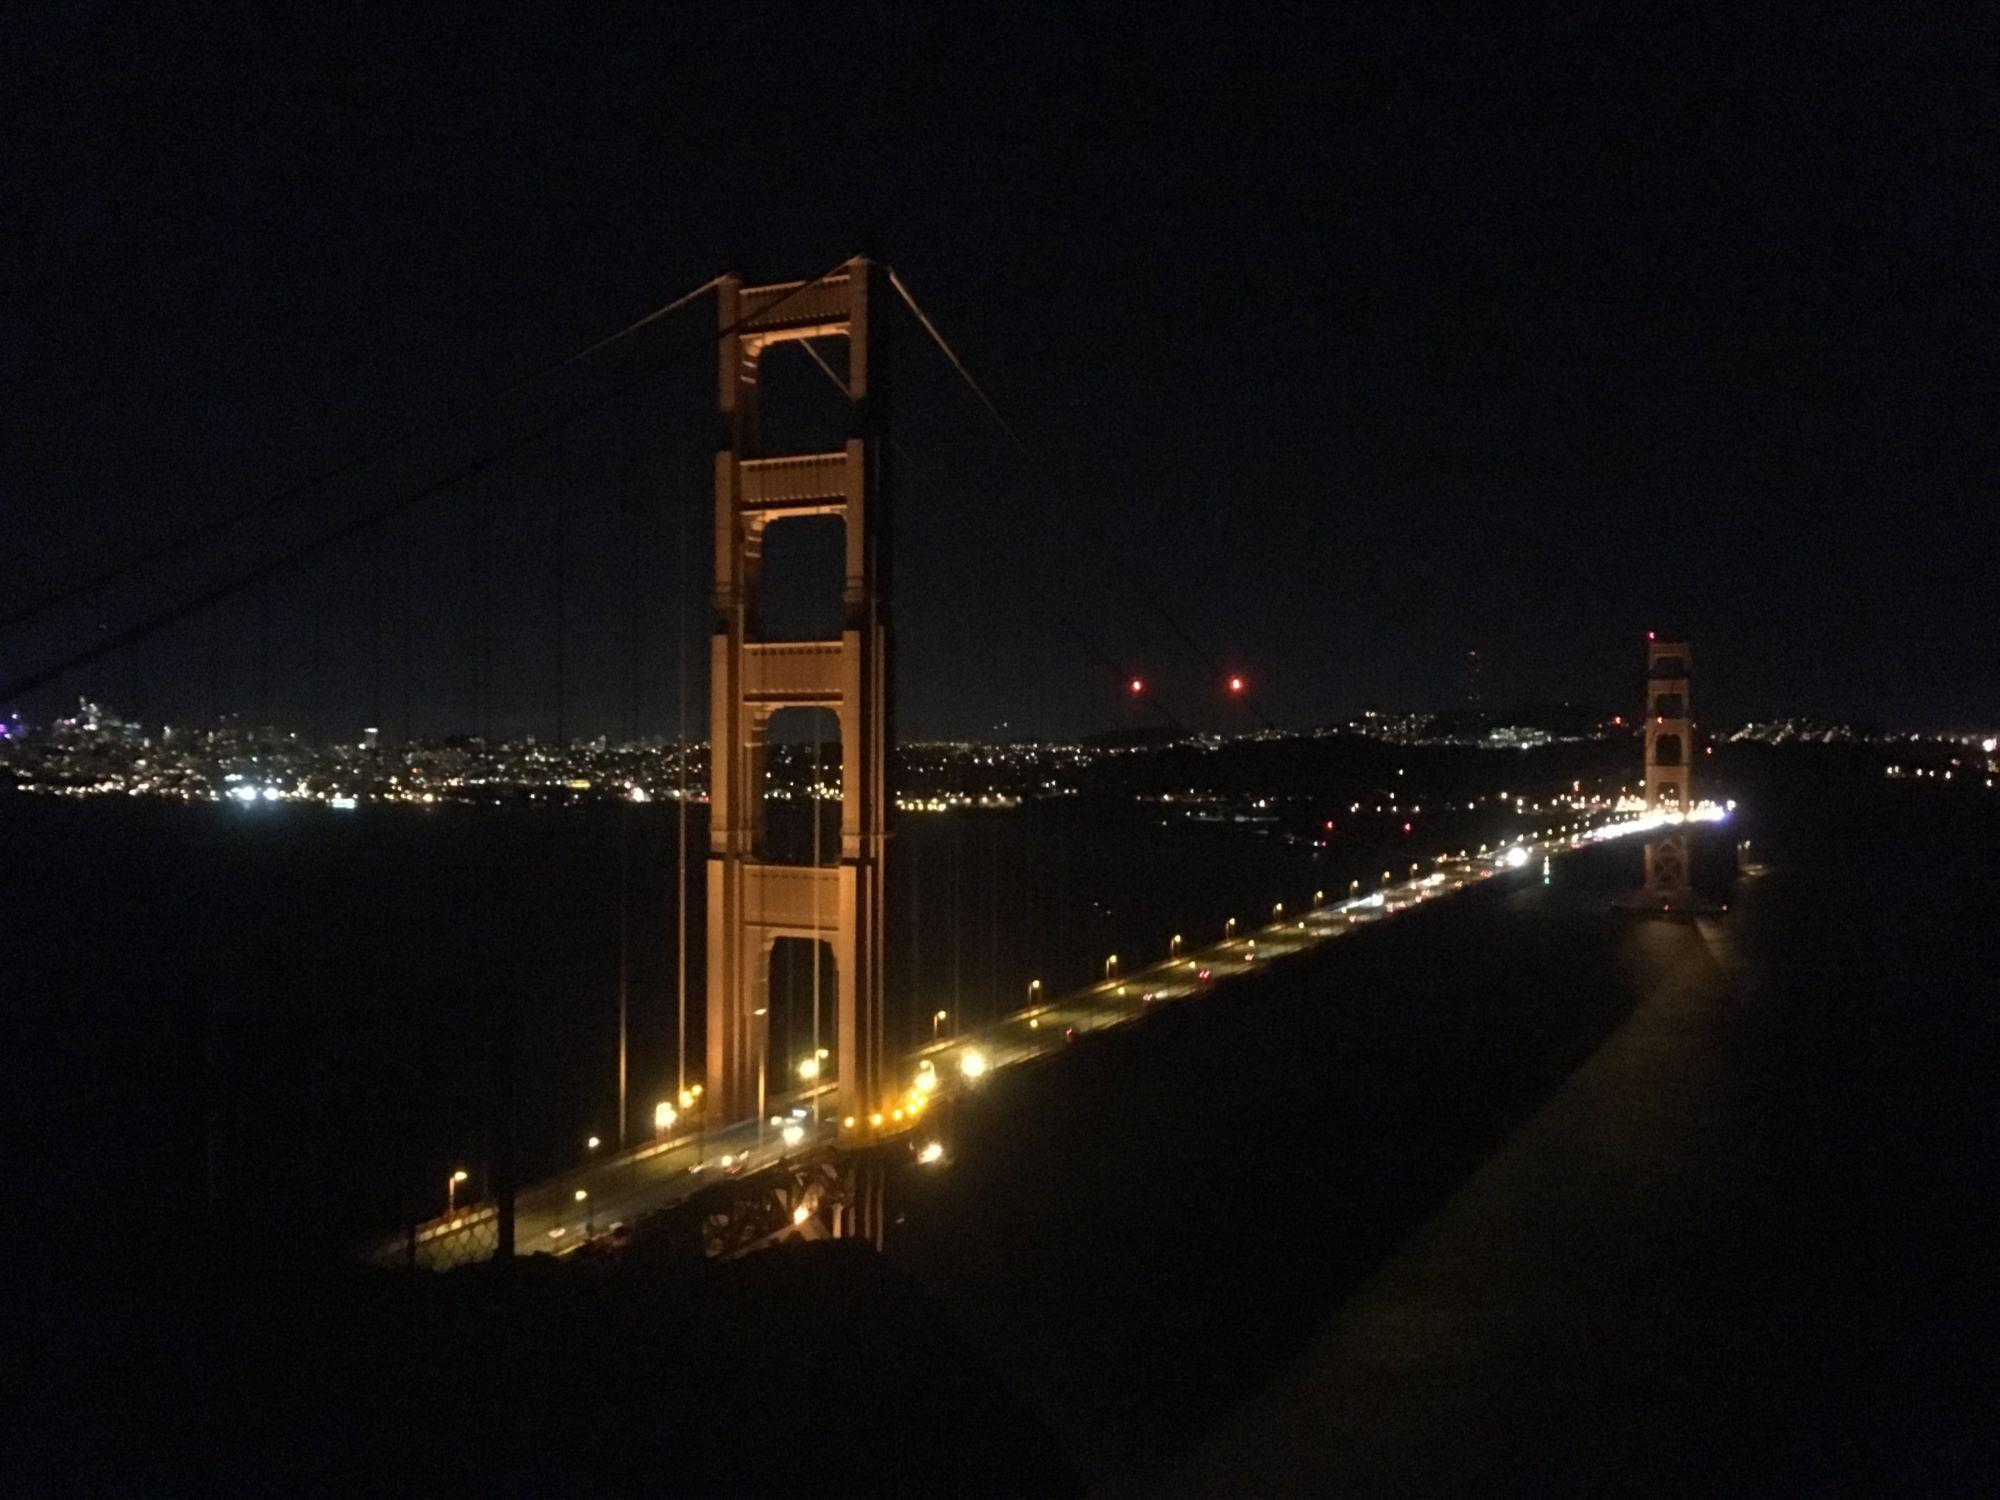 Picture of Golden Gate taken with an iPhone 5se